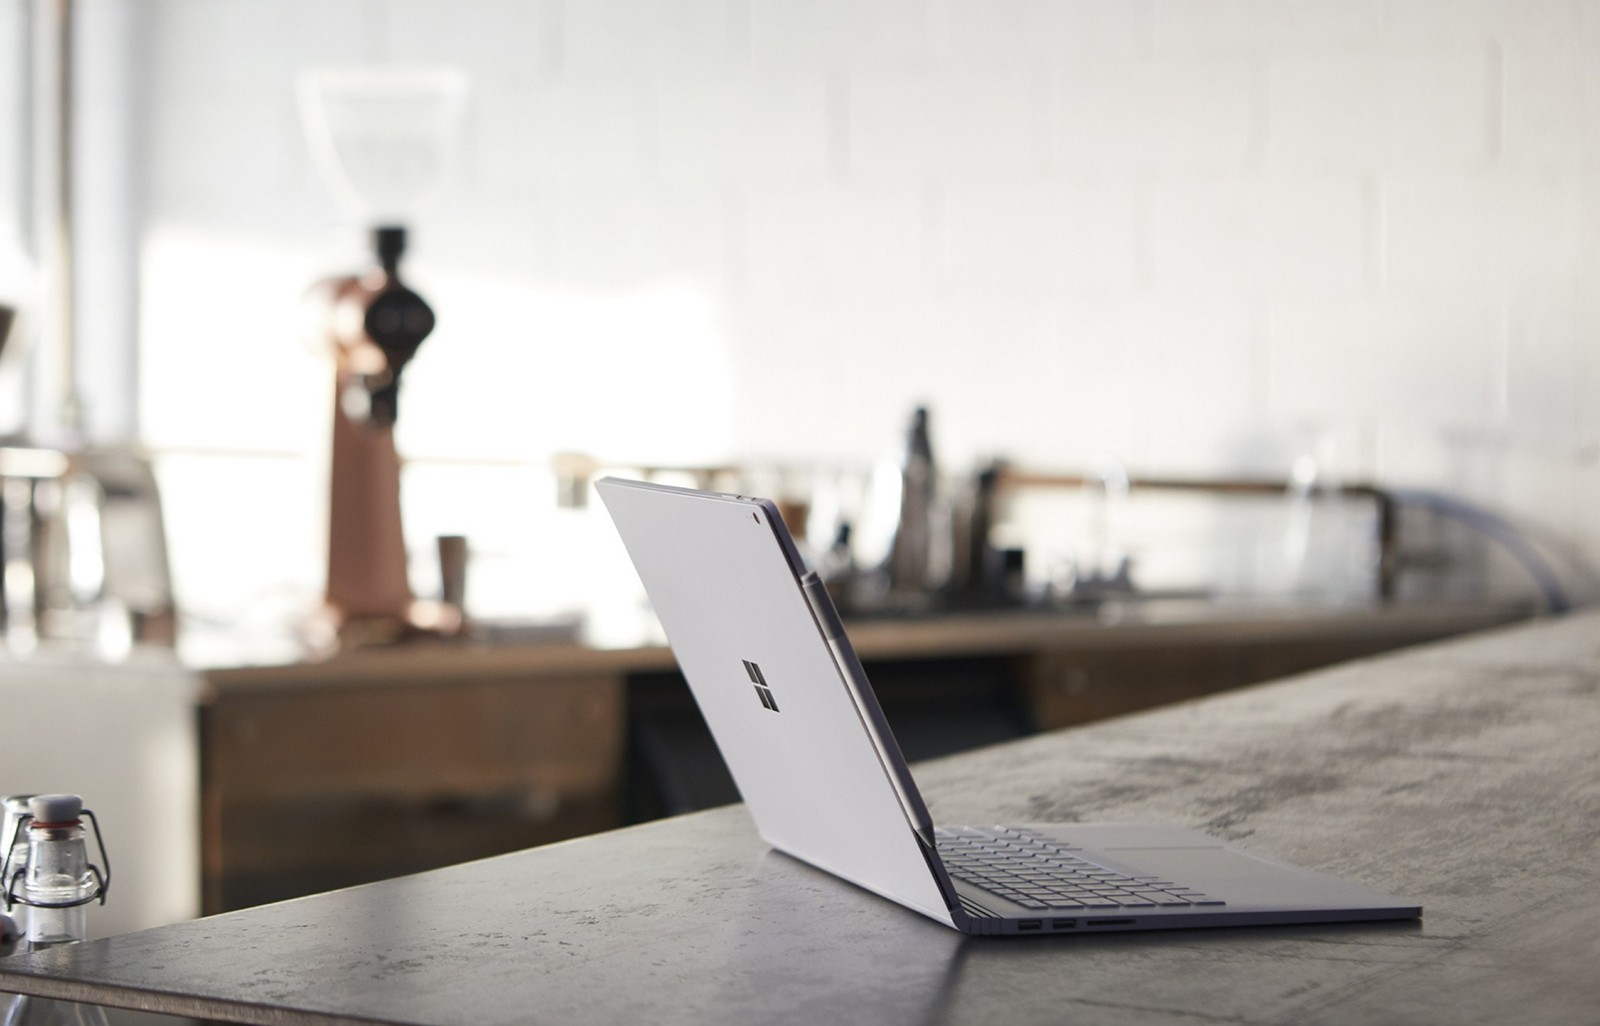 Surface Book 2 on table with background